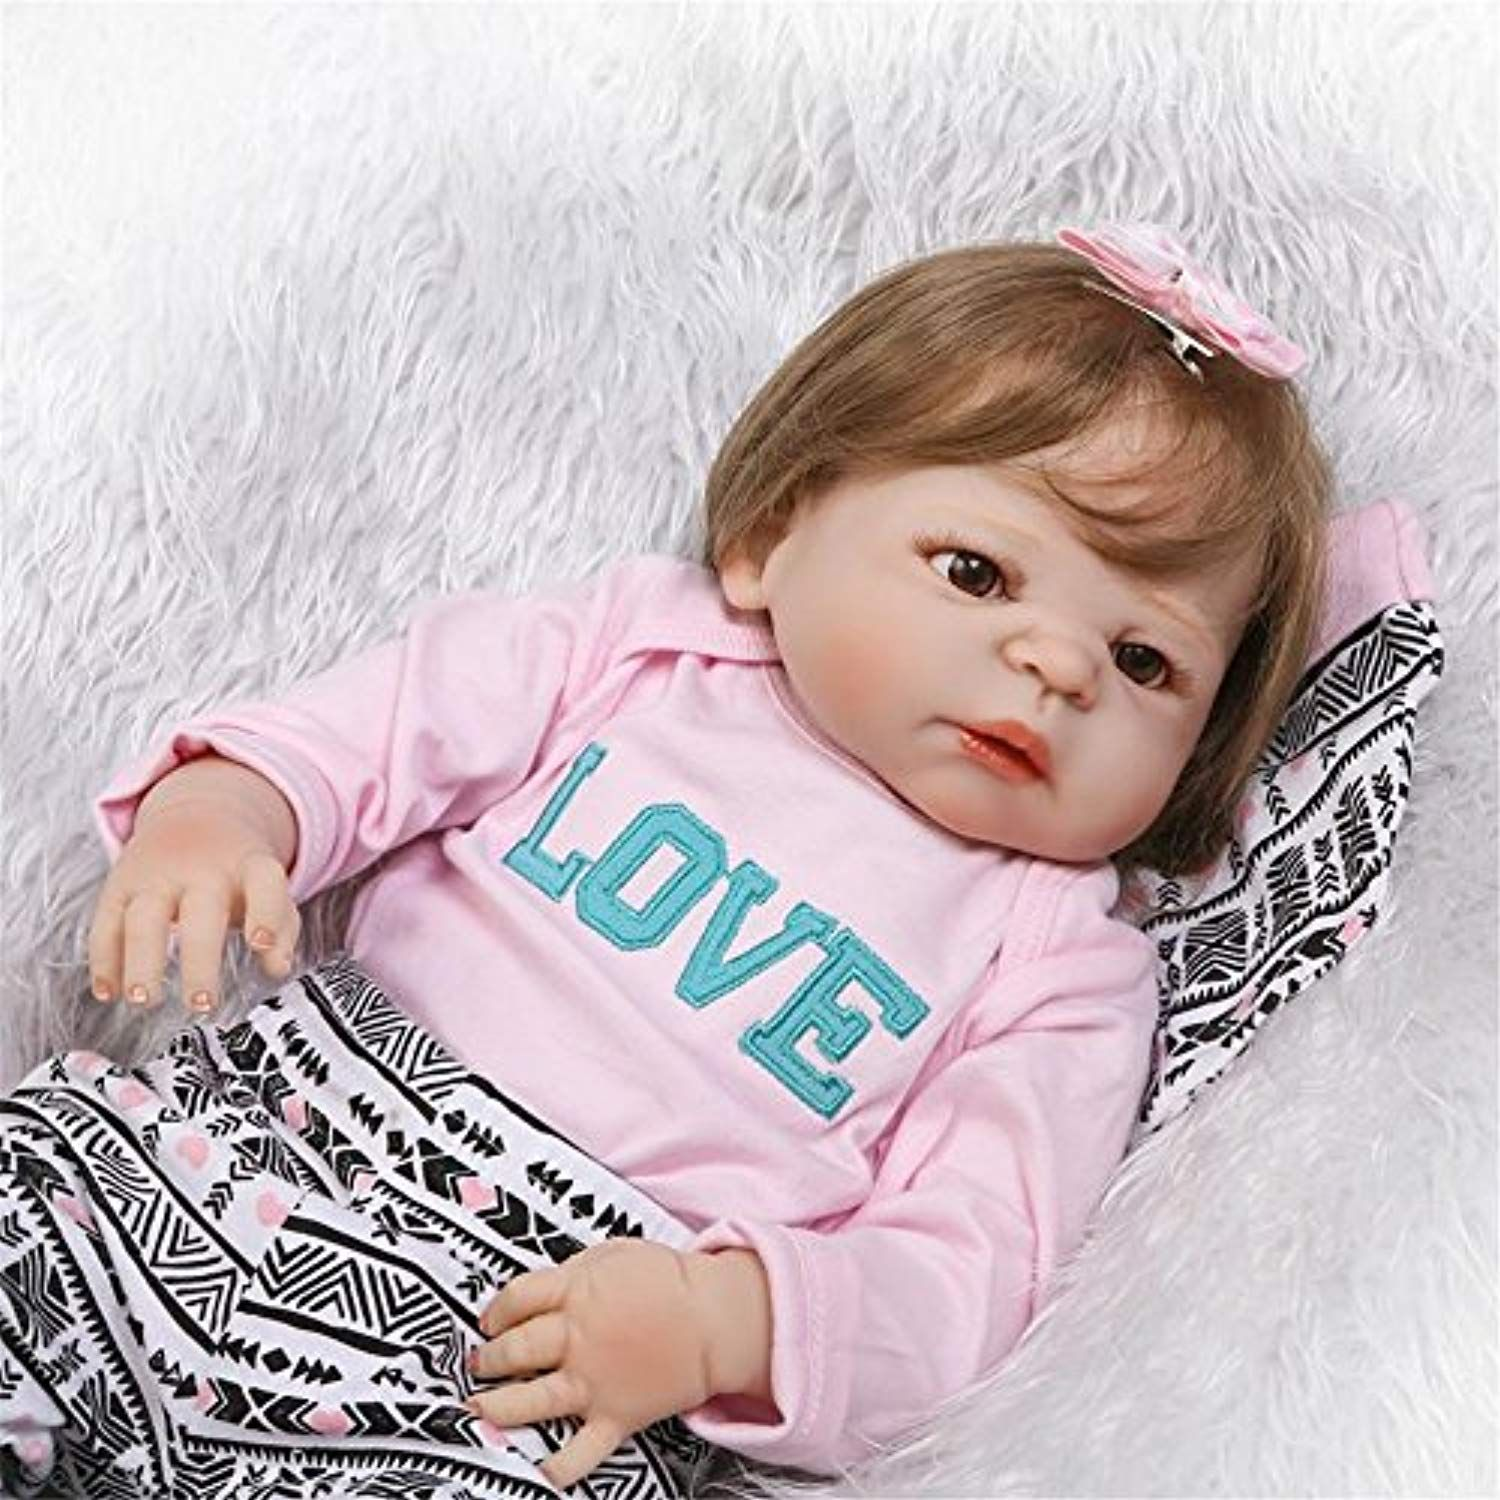 Soft Realistic Reborn Baby Dolls Girl 23 Inch 57cm Full Body Silicone Vinyl  Lifelike Baby Alive Dolls Playmates For Kids Birthday Christmas Holiday  Gift ... 4ad44d911d